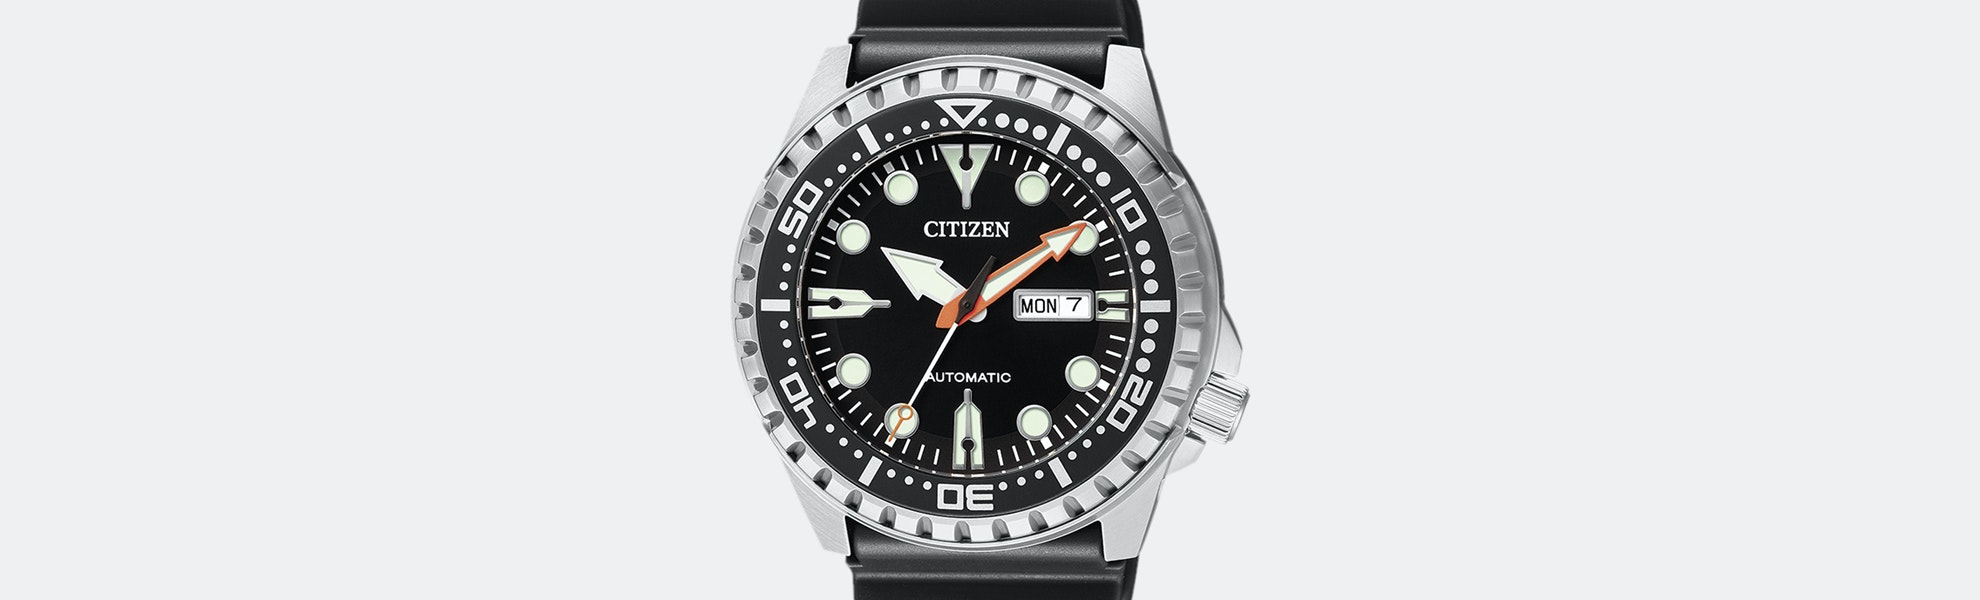 Citizen NH8380 Diver Automatic Watch